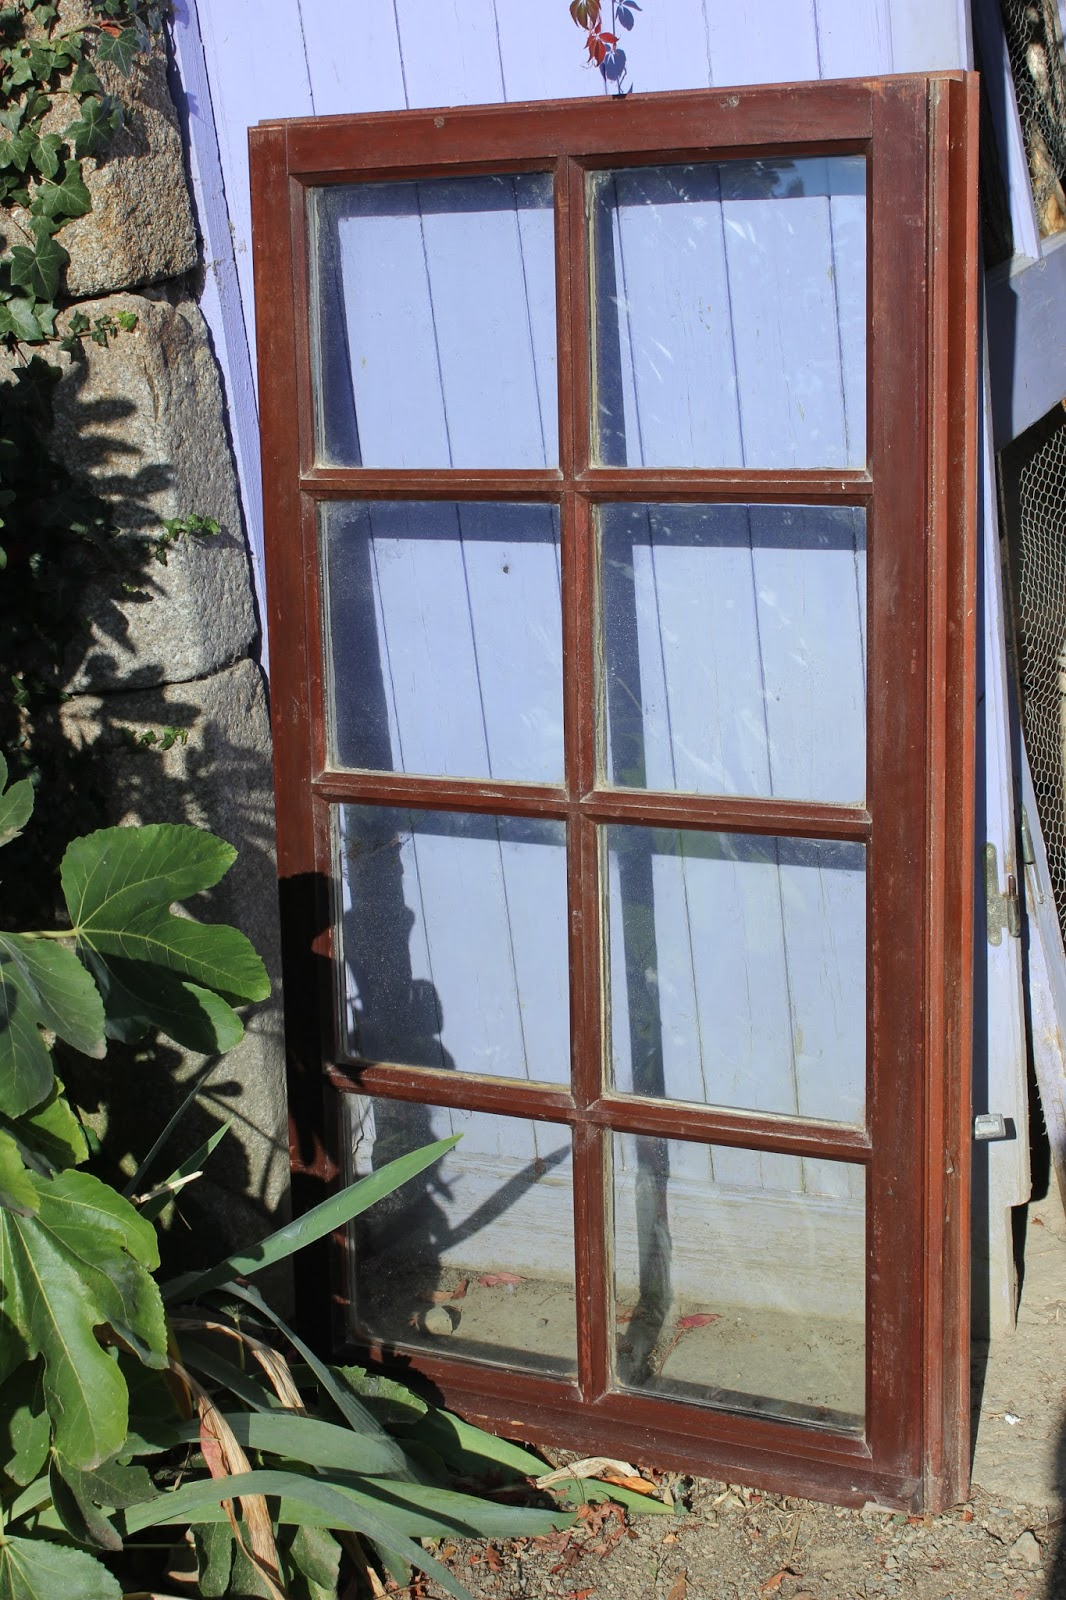 recuperated double-glazed window